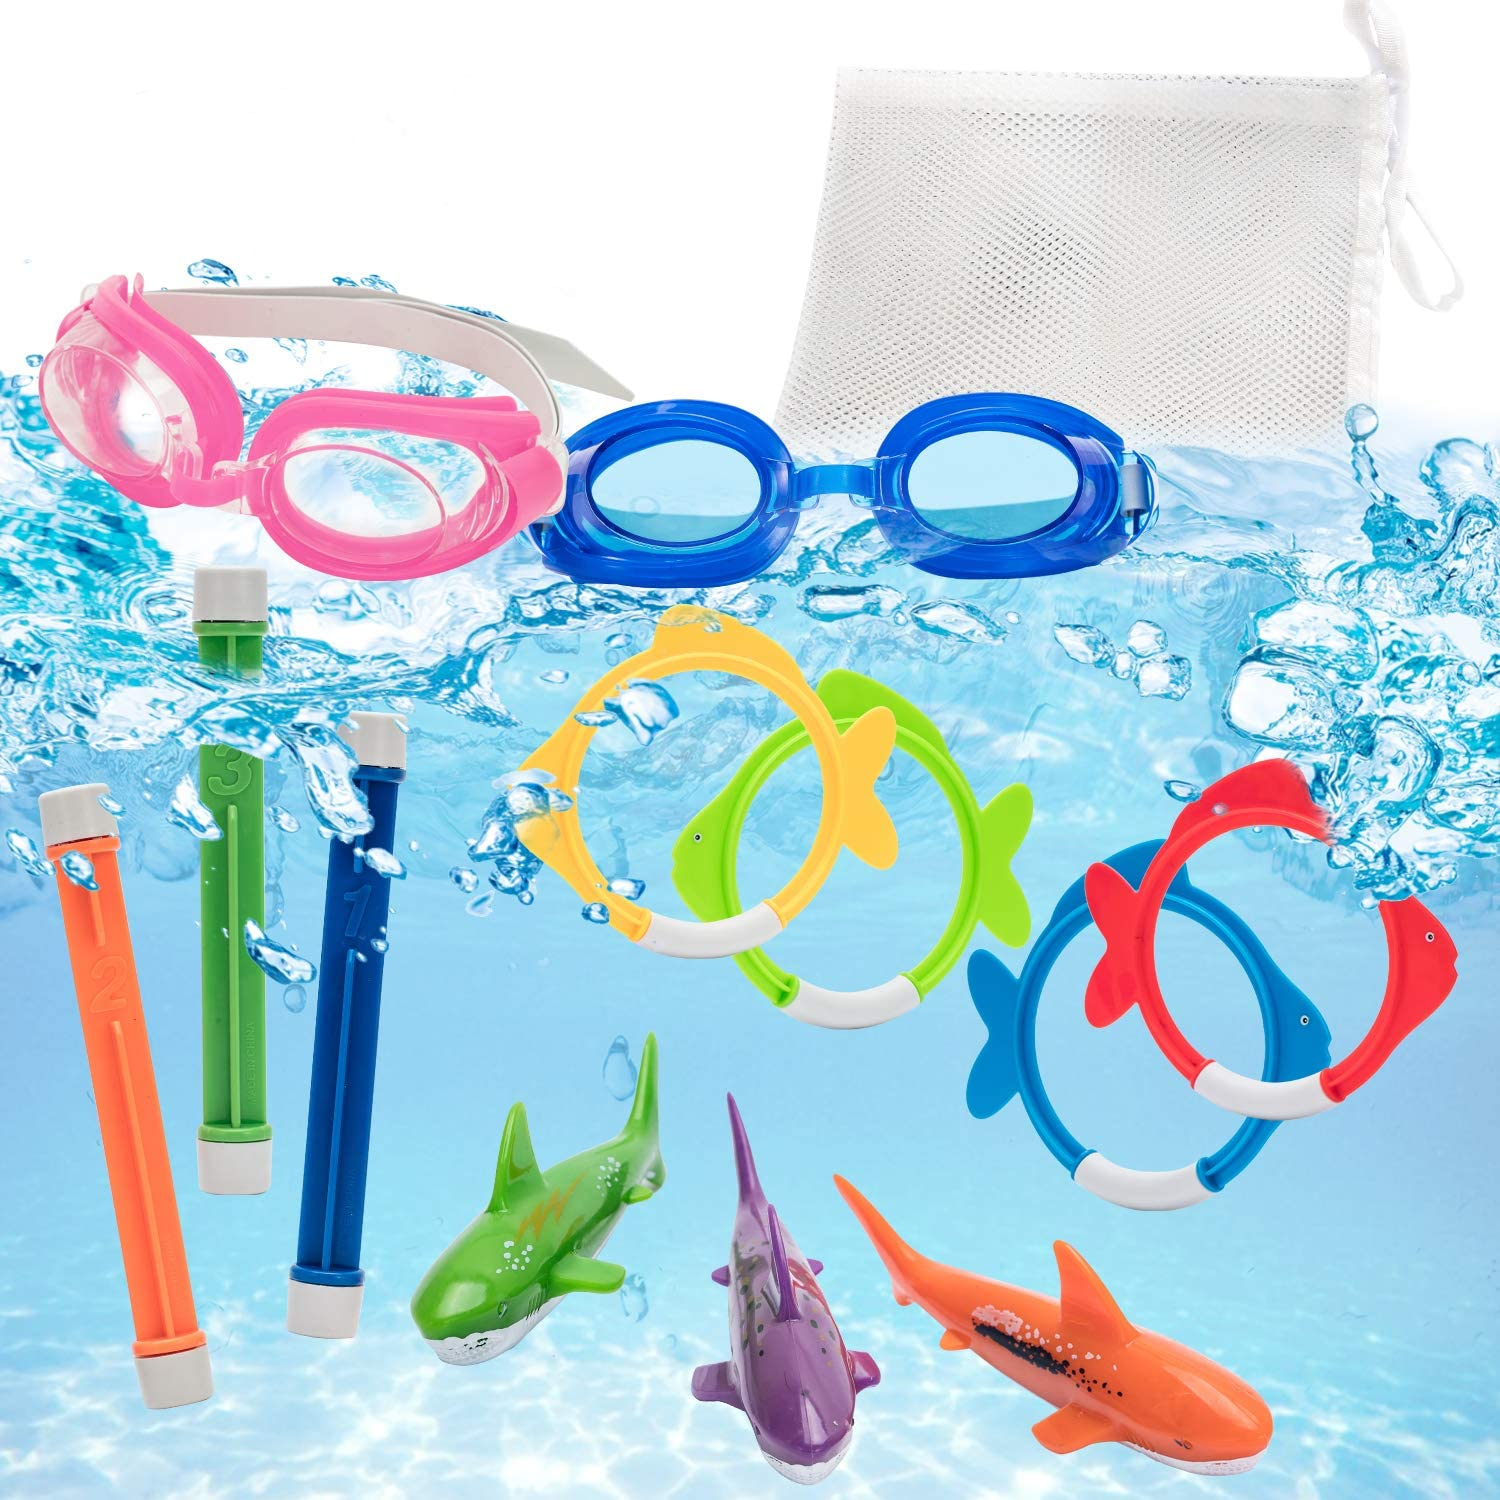 Pool Diving and Swimming Toys for Kids and Beginner Swimmers, 10 Pack Set with Goggles, Dive Sticks, Fish Rings, and Shark Torpedos, Bright and Colorful Underwater Swim Training Bundle w/ Storage Bag